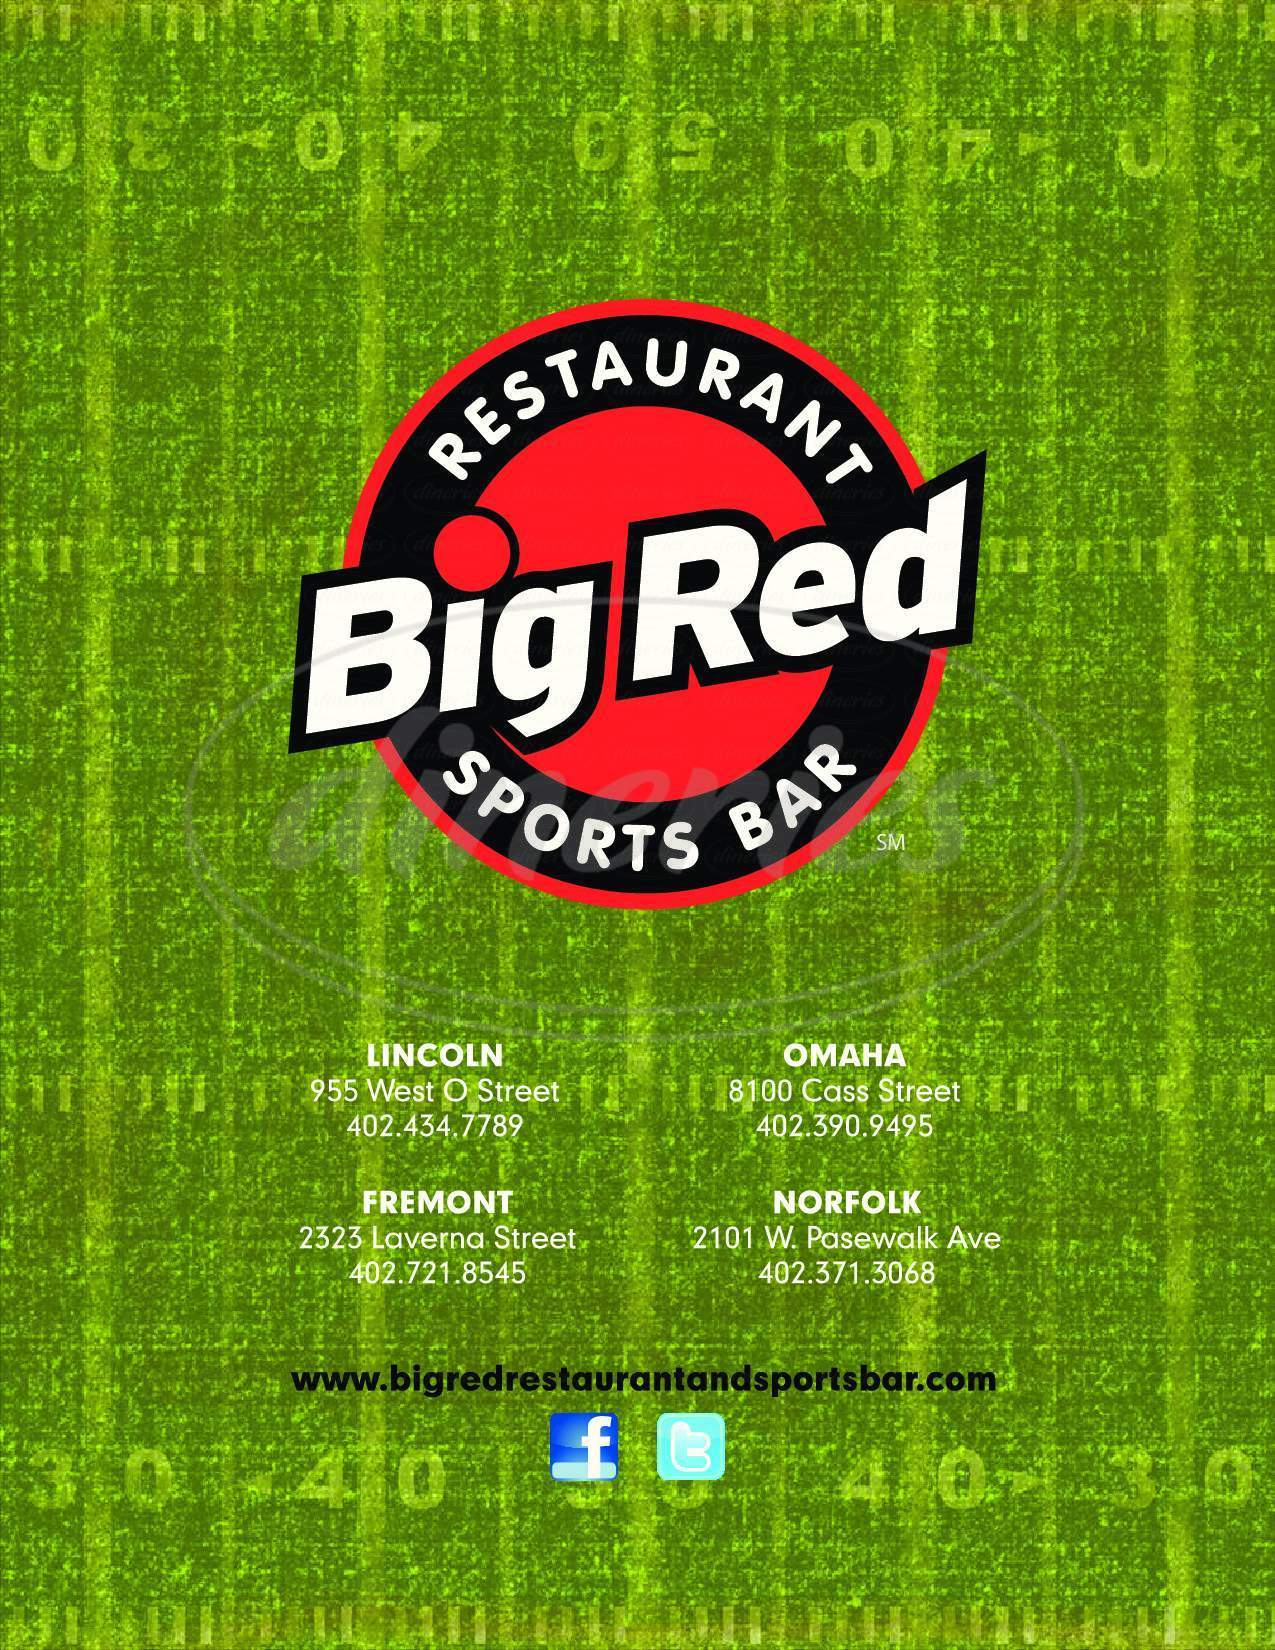 menu for Big Red Sports Bar & Grill